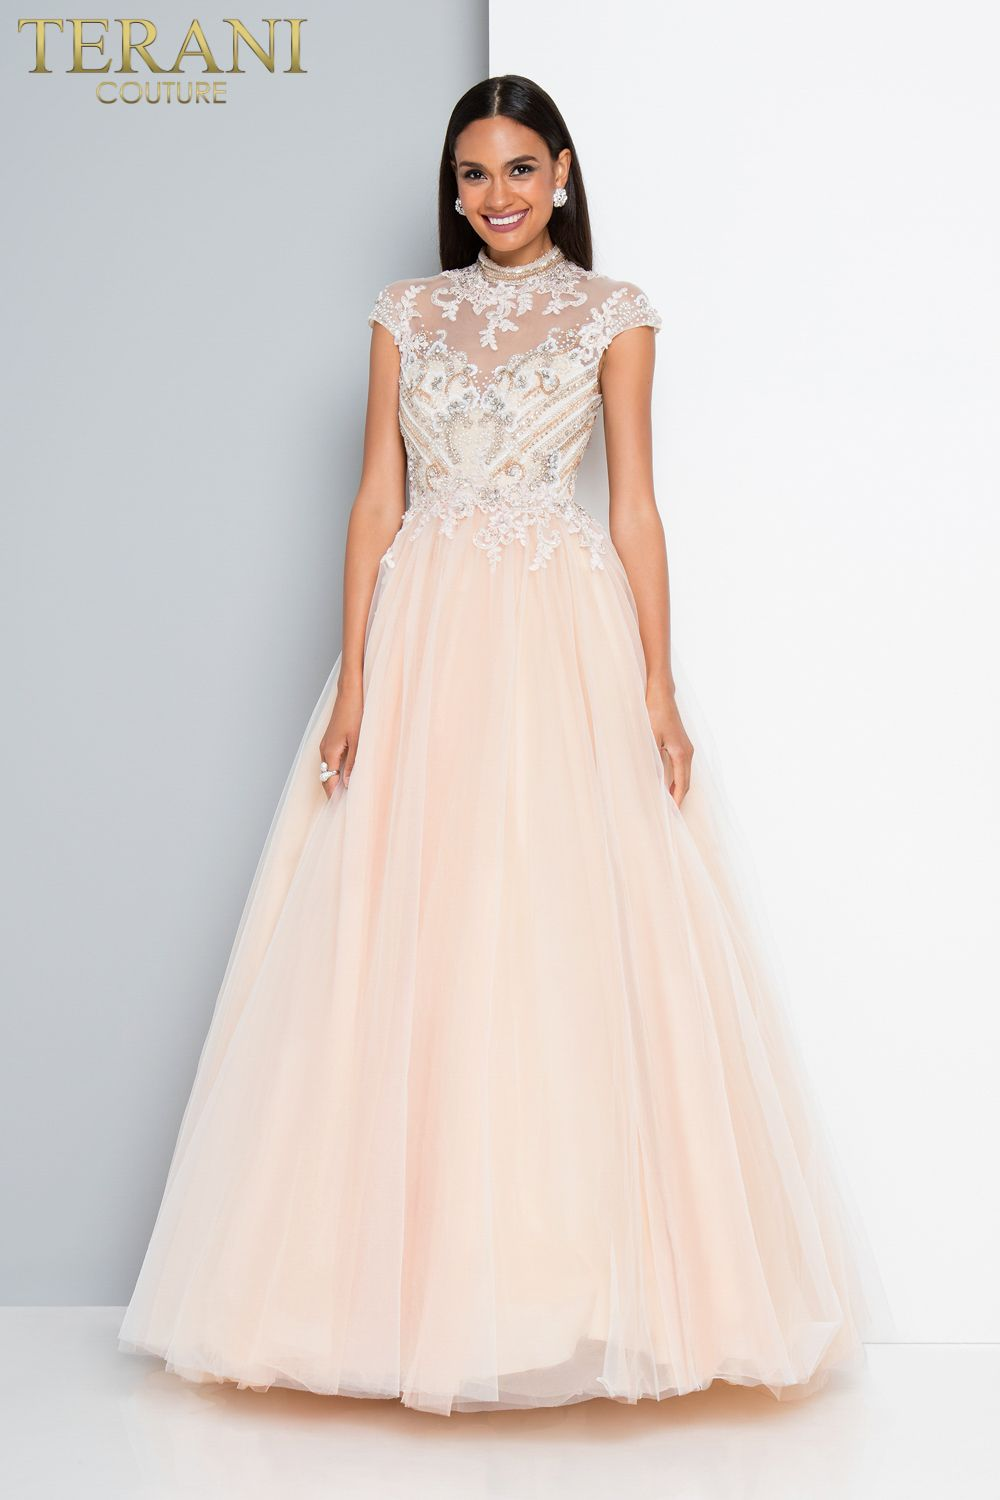 Terani Couture Blush Light Pink Champagne Ballgown with Lace Bodice ...